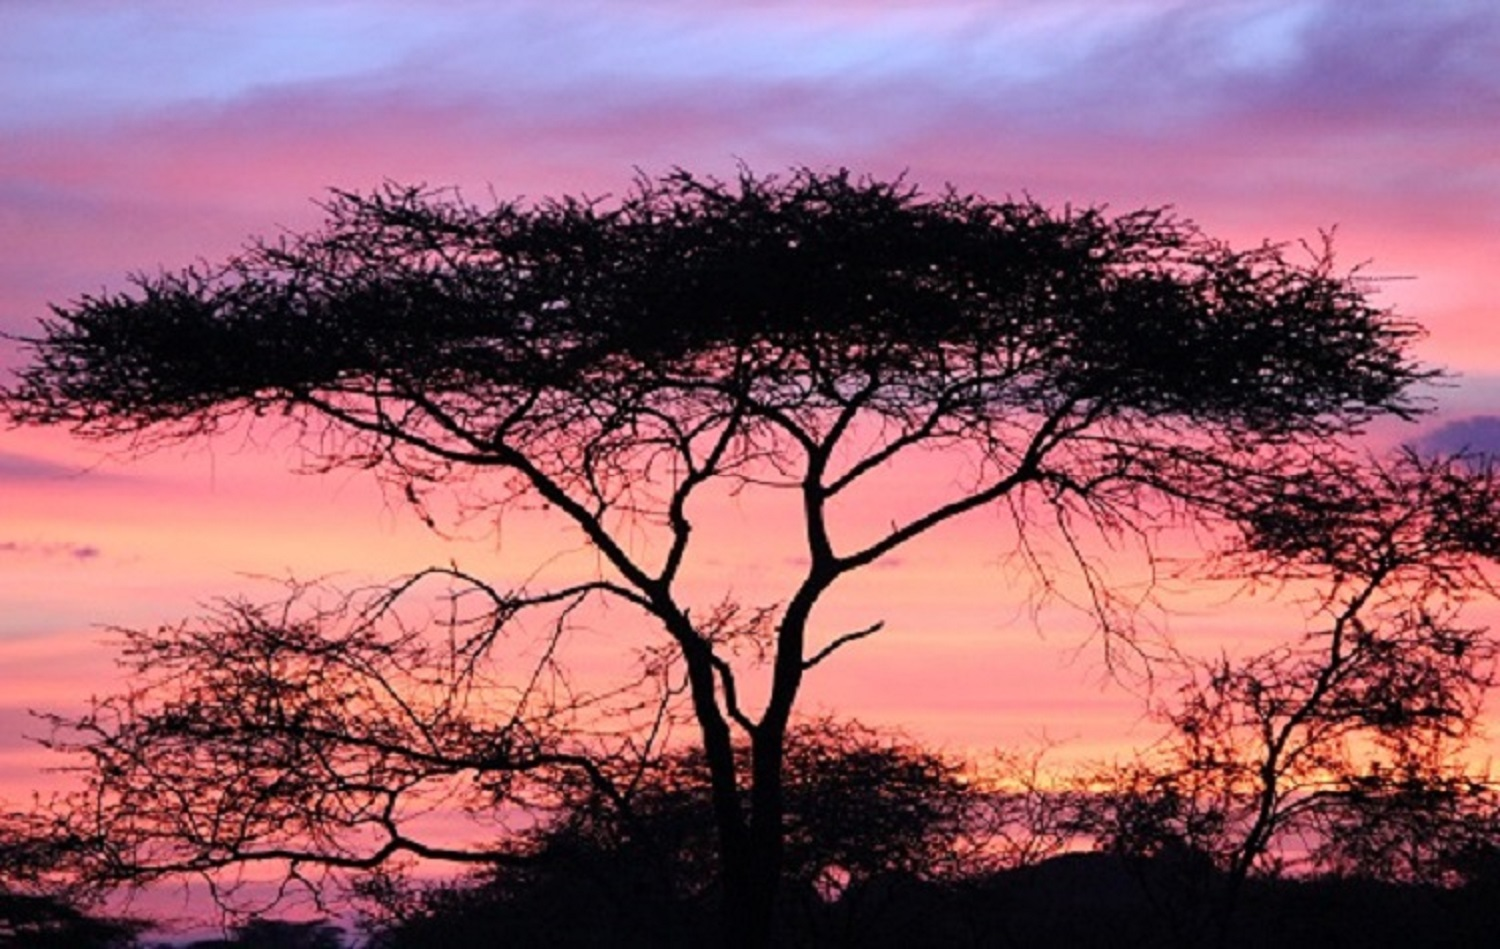 pink sunset with large tree